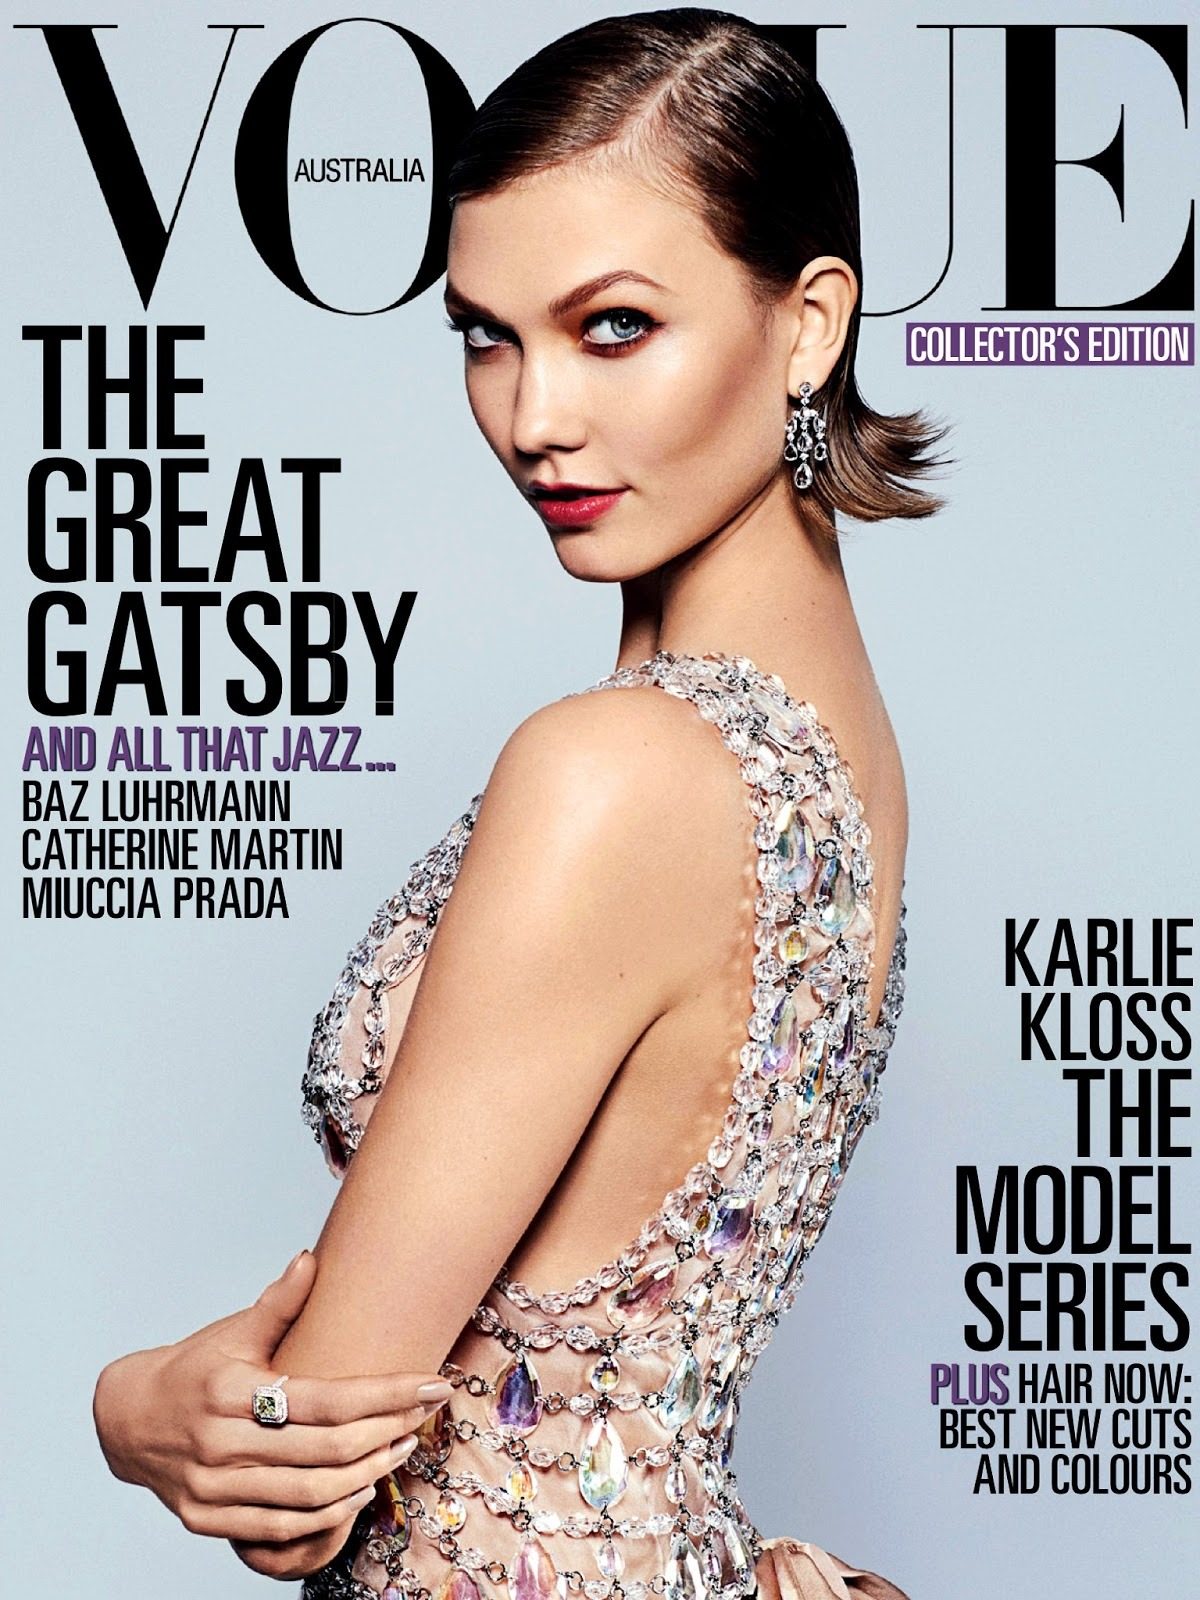 Karlie Kloss Vogue Australia, May 2013 Photos by Arthur Elgort